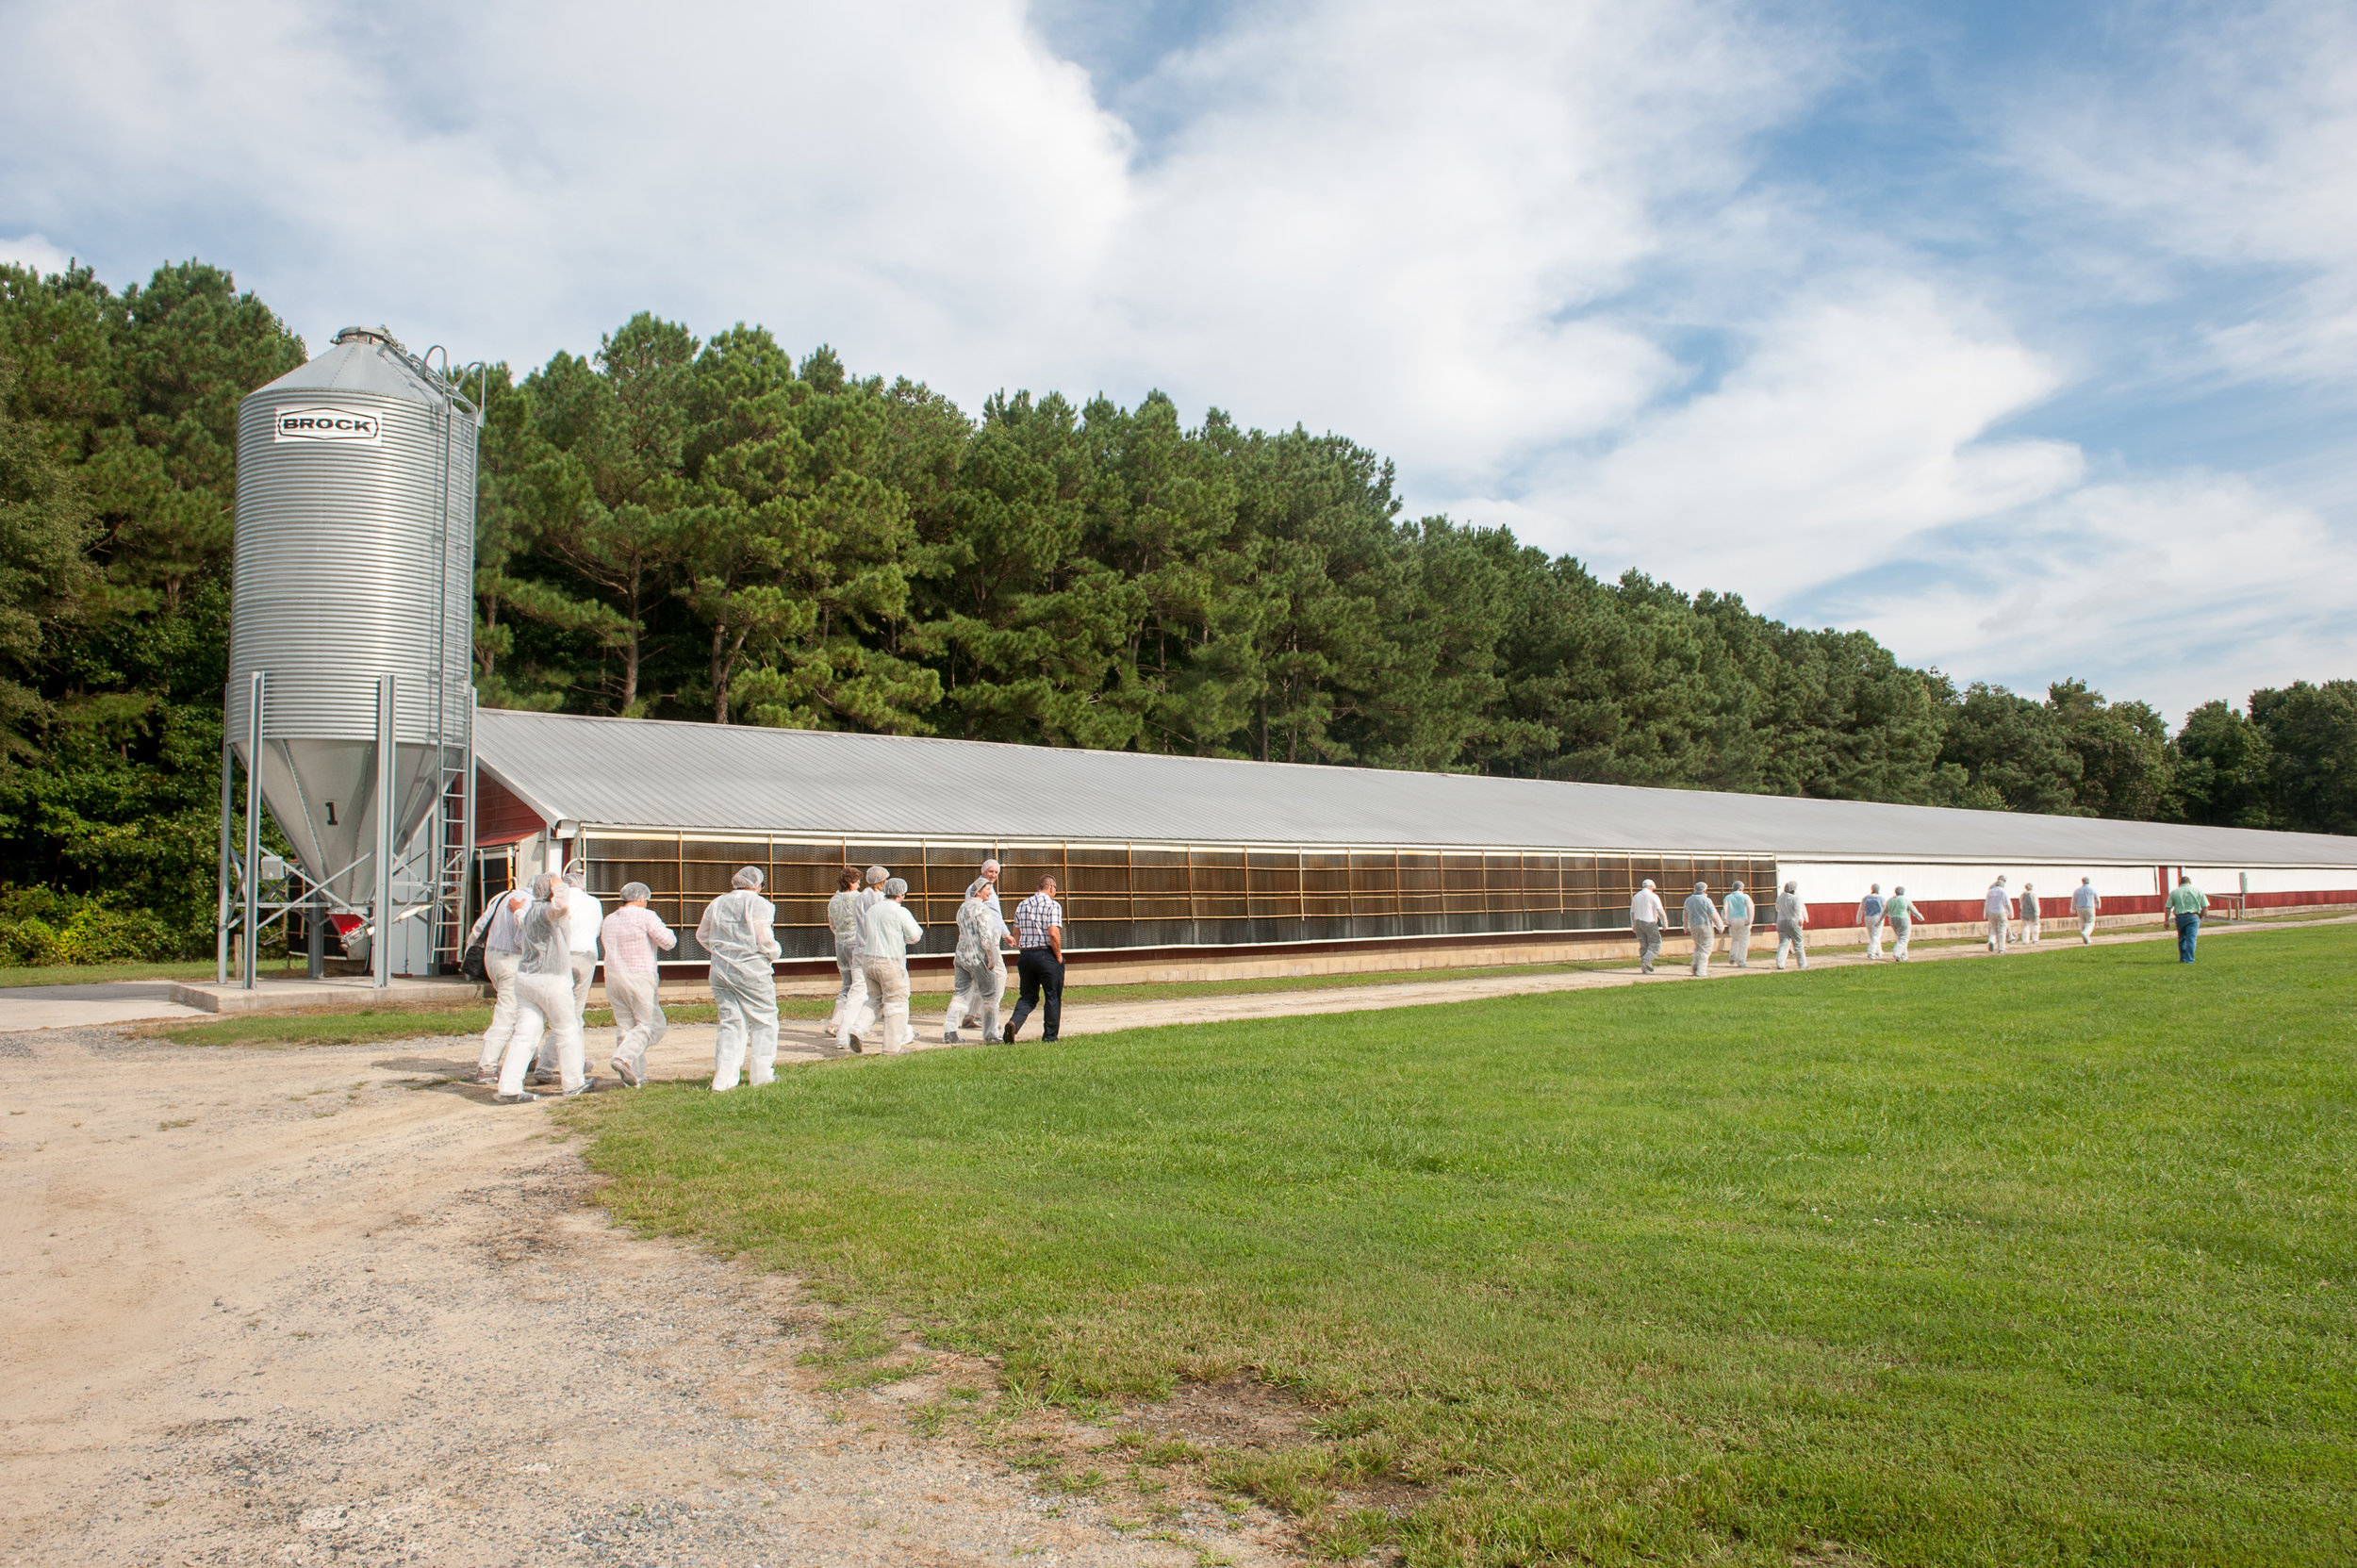 Image by Edwin Remsberg. Image shows poultry barn in Maryland